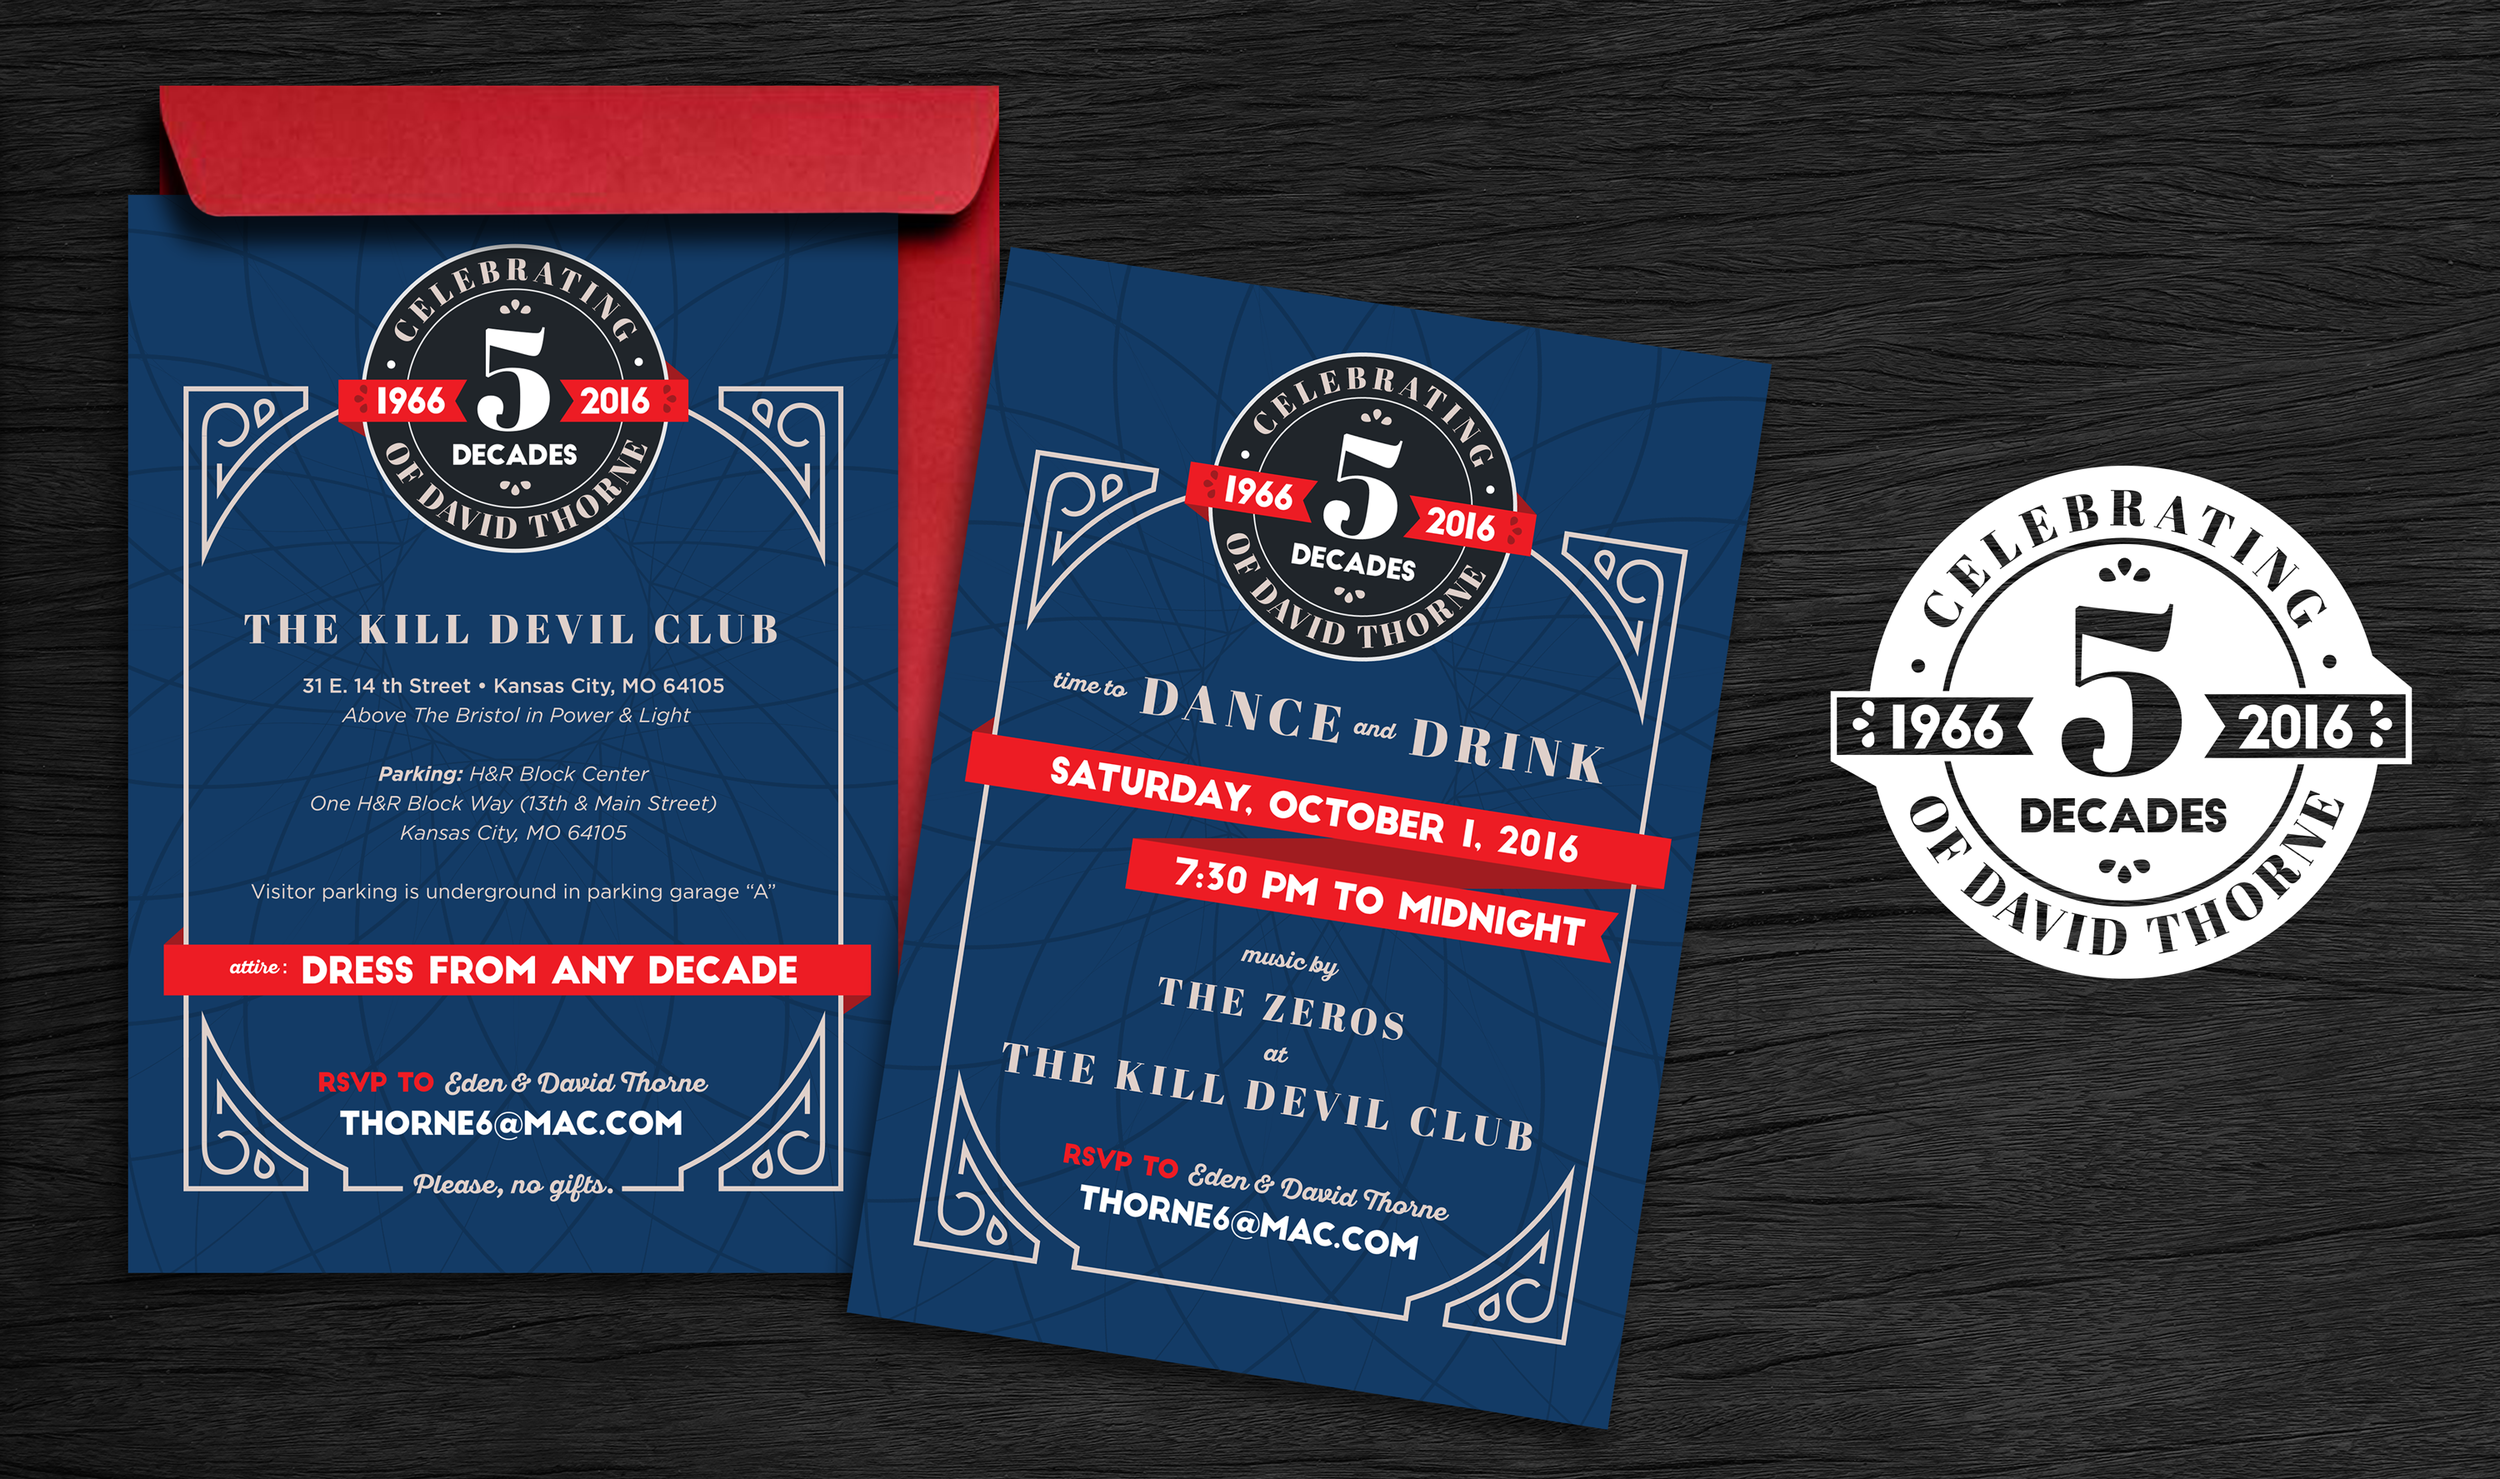 David is 50 years young. This invitation suite was super fun to work on. It was a costume party where the guests dressed from their favorite decades. The logo created for the party was printed on napkins and other collateral.